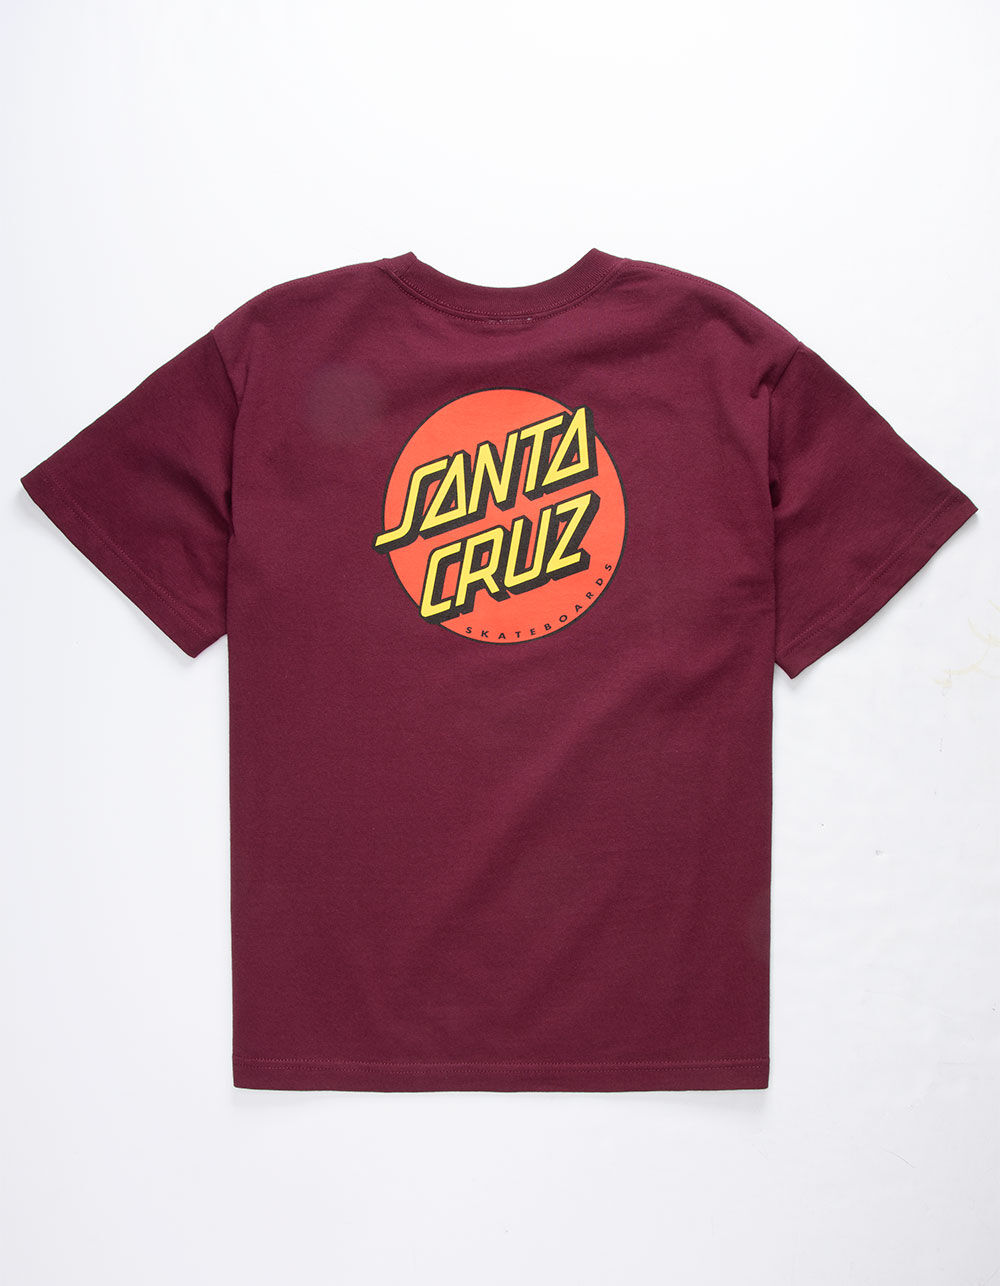 SANTA CRUZ Classic Dot Burgundy Boys T-Shirt